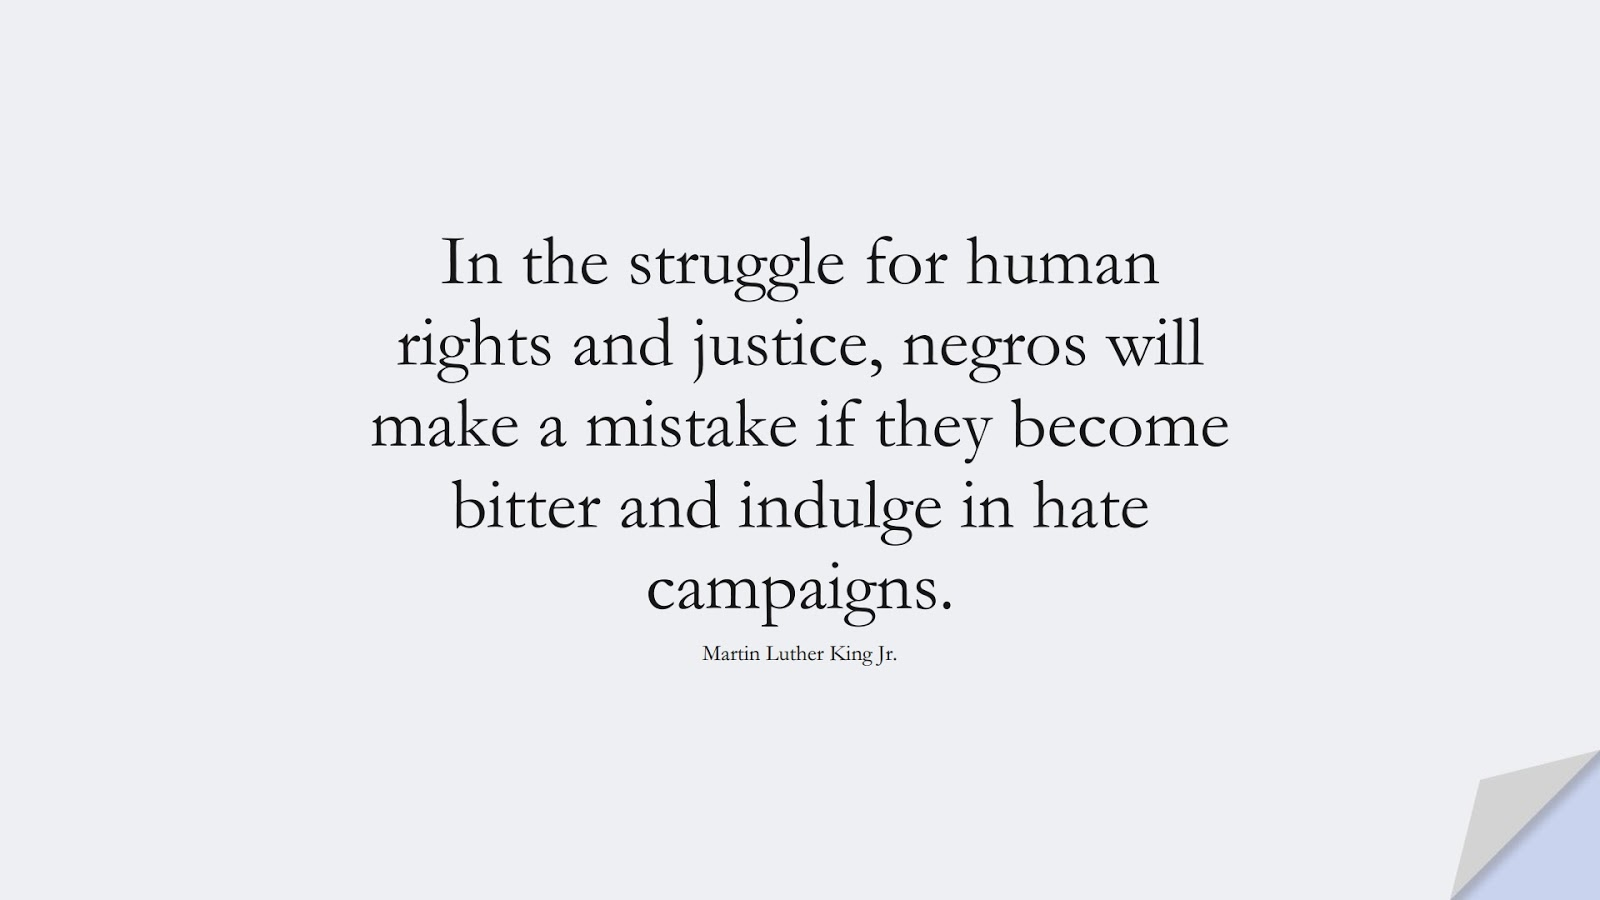 In the struggle for human rights and justice, negros will make a mistake if they become bitter and indulge in hate campaigns. (Martin Luther King Jr.);  #MartinLutherKingJrQuotes